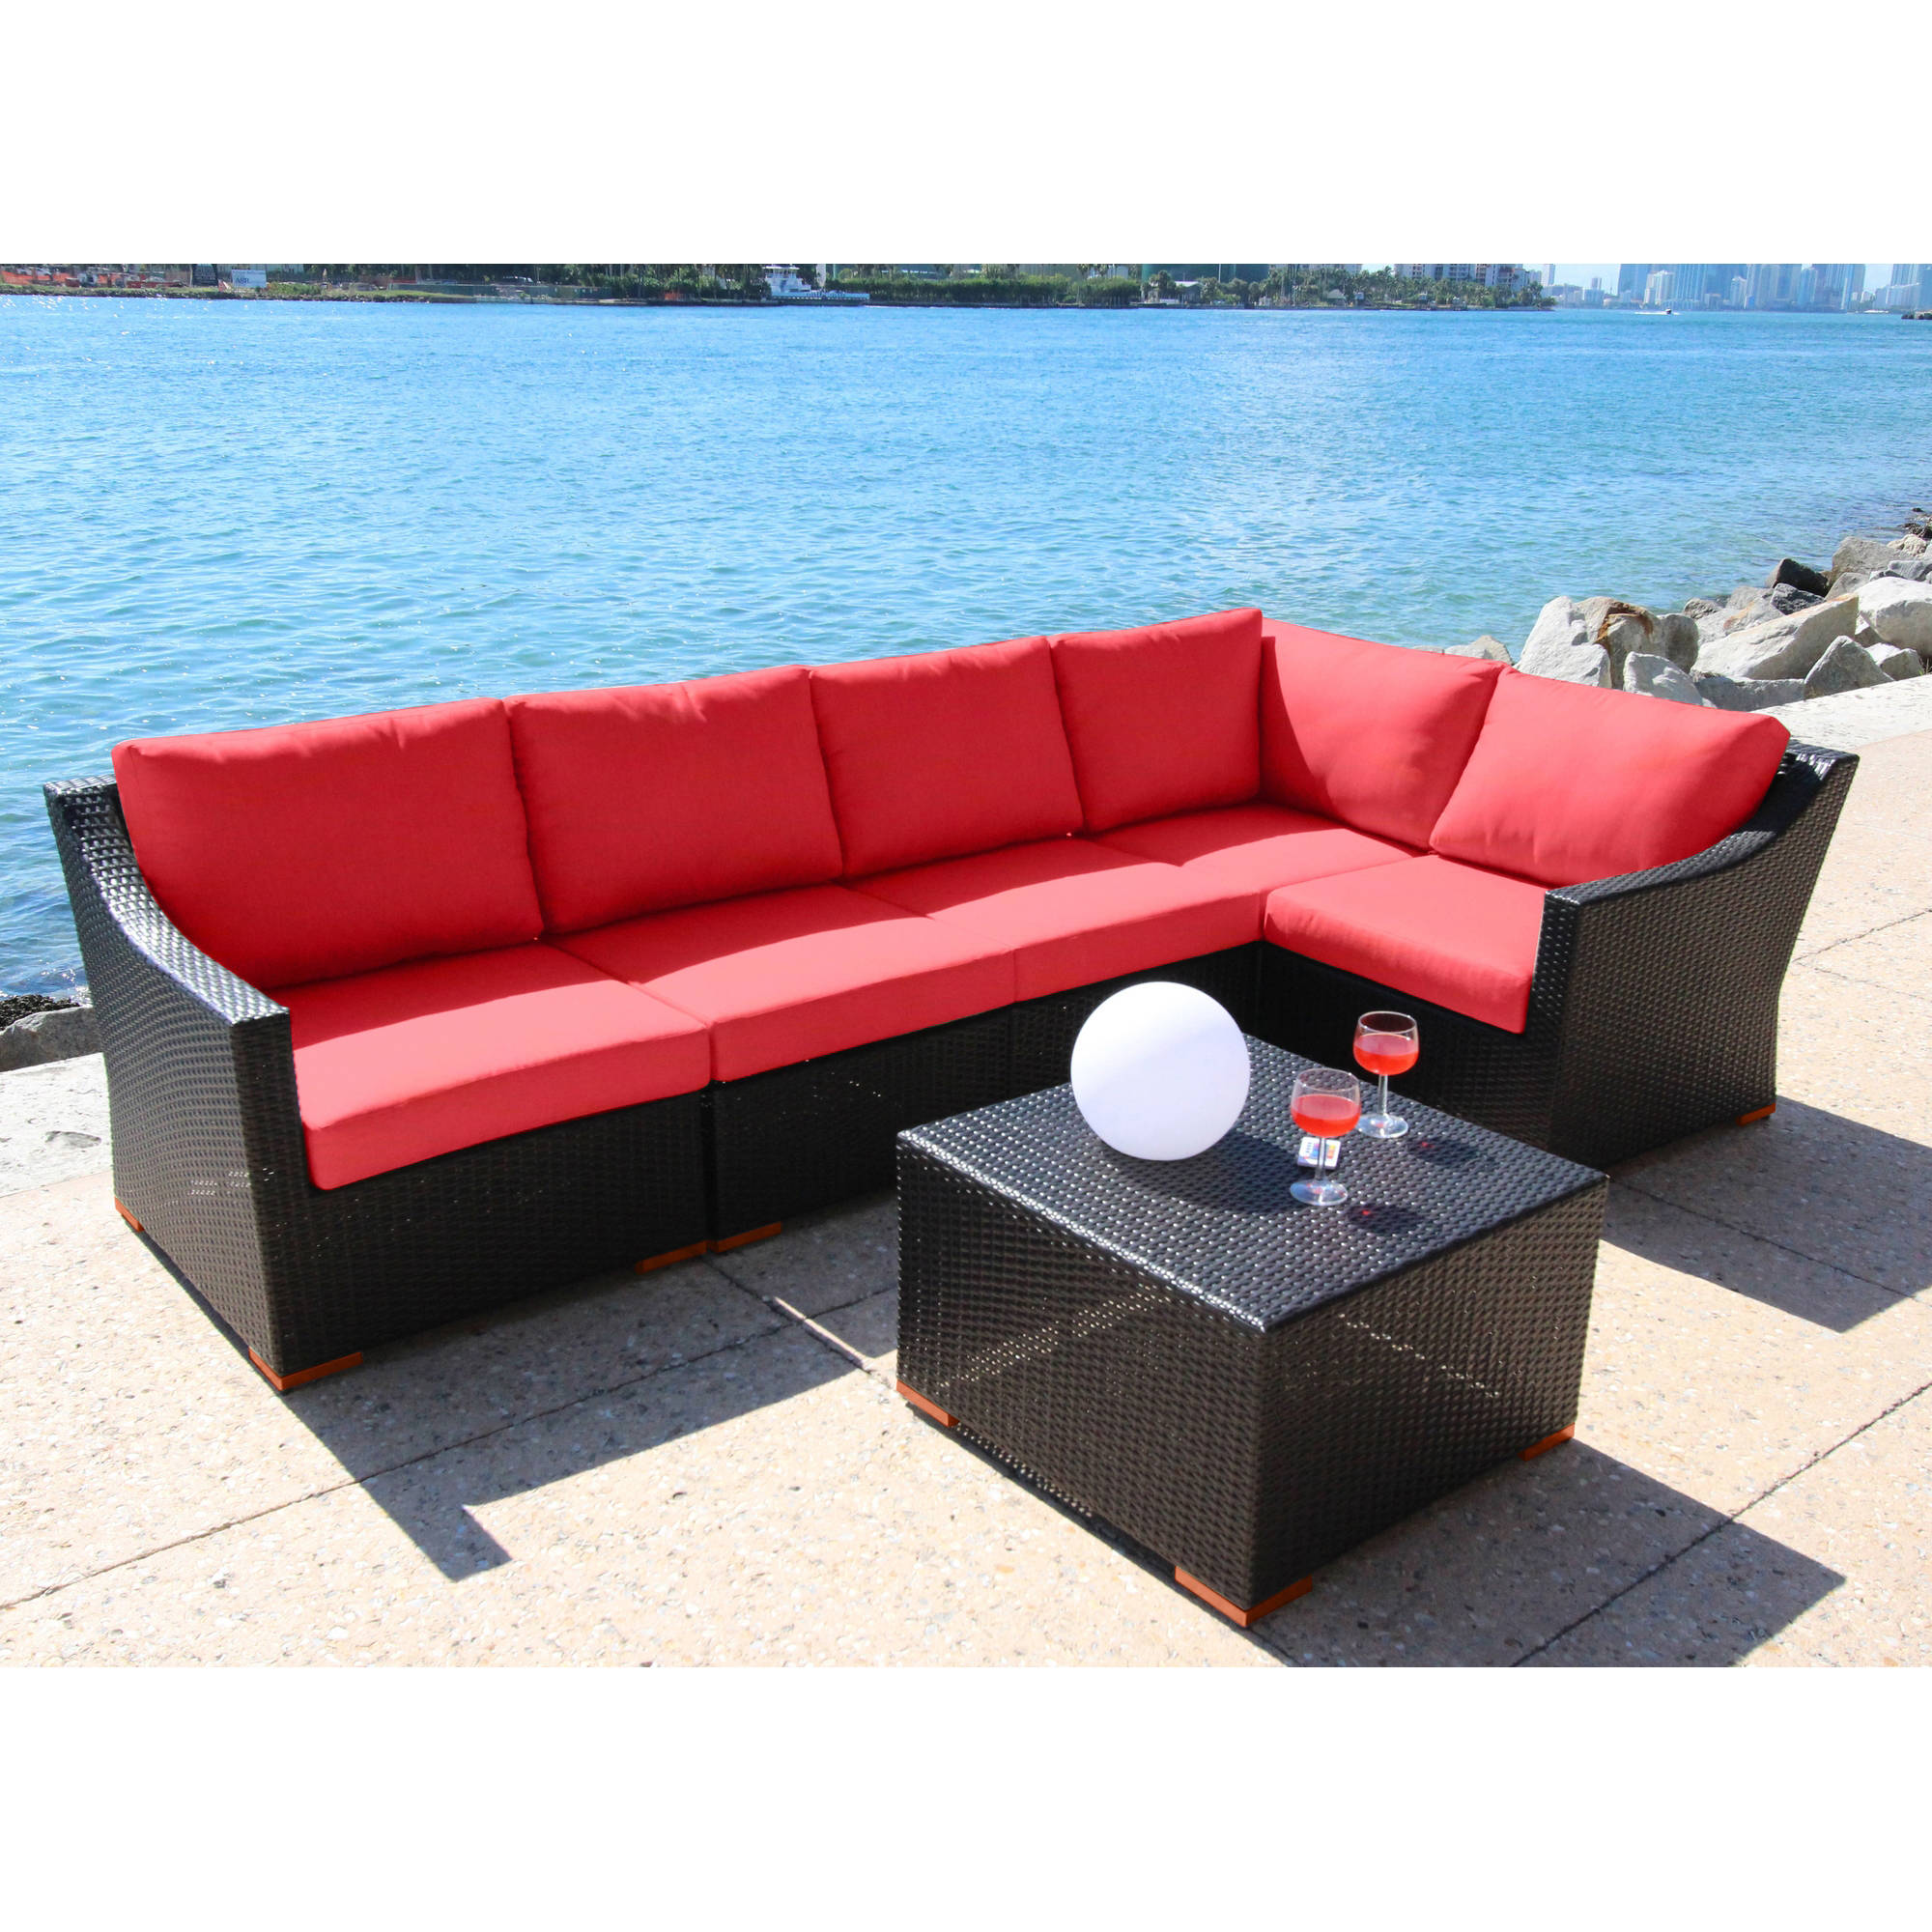 Bellini Home and Garden Cava 6-Piece Conversation Sectional Seating Set